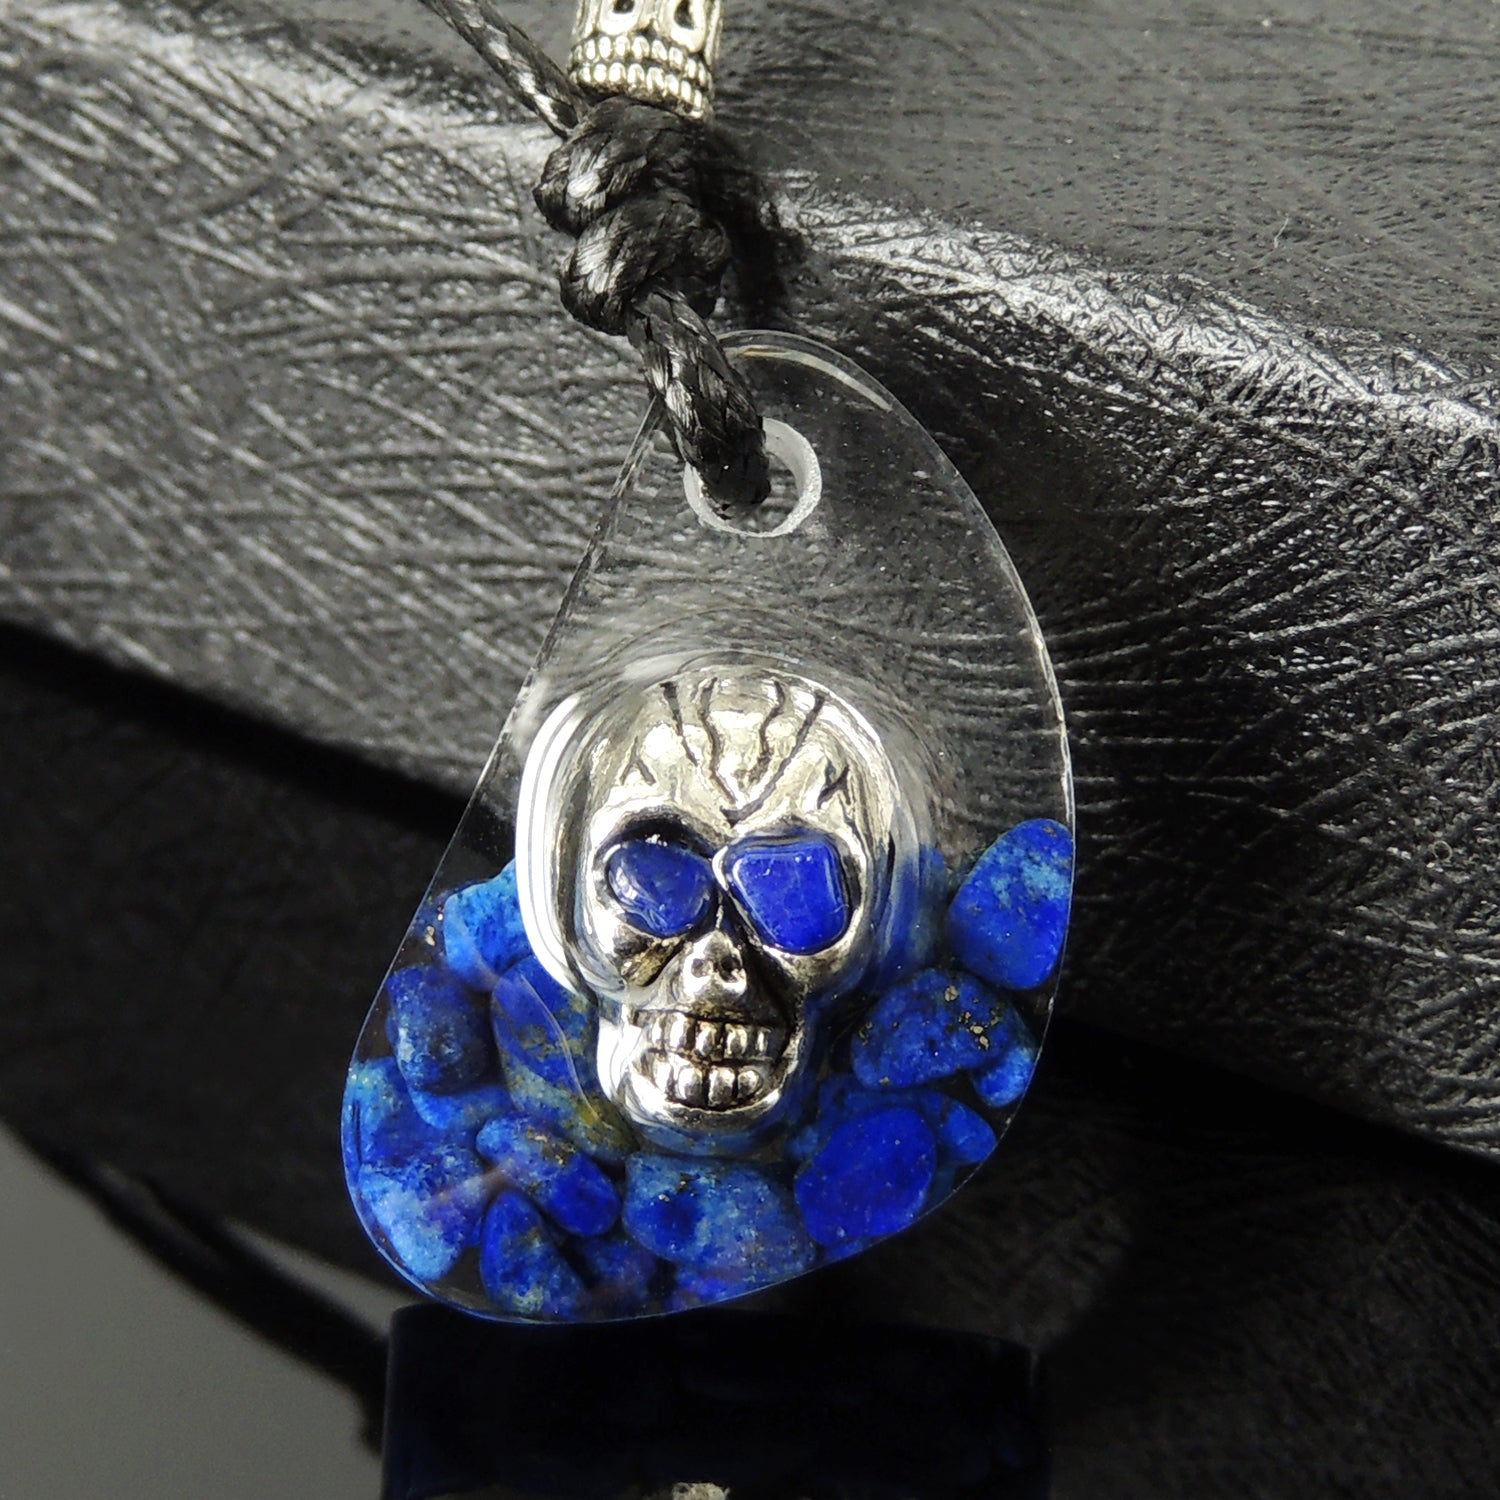 White Walker Game of Thrones The Night King Arya Handmade Polished Epoxy Resin Pendant, Adjustable Wax Rope Necklace, Embedded Zombie Skull Bead, Small Natural Lapis Lazuli Gemstone Chips, Tibetan Silver, Non-plated Genuine 925 Sterling Silver